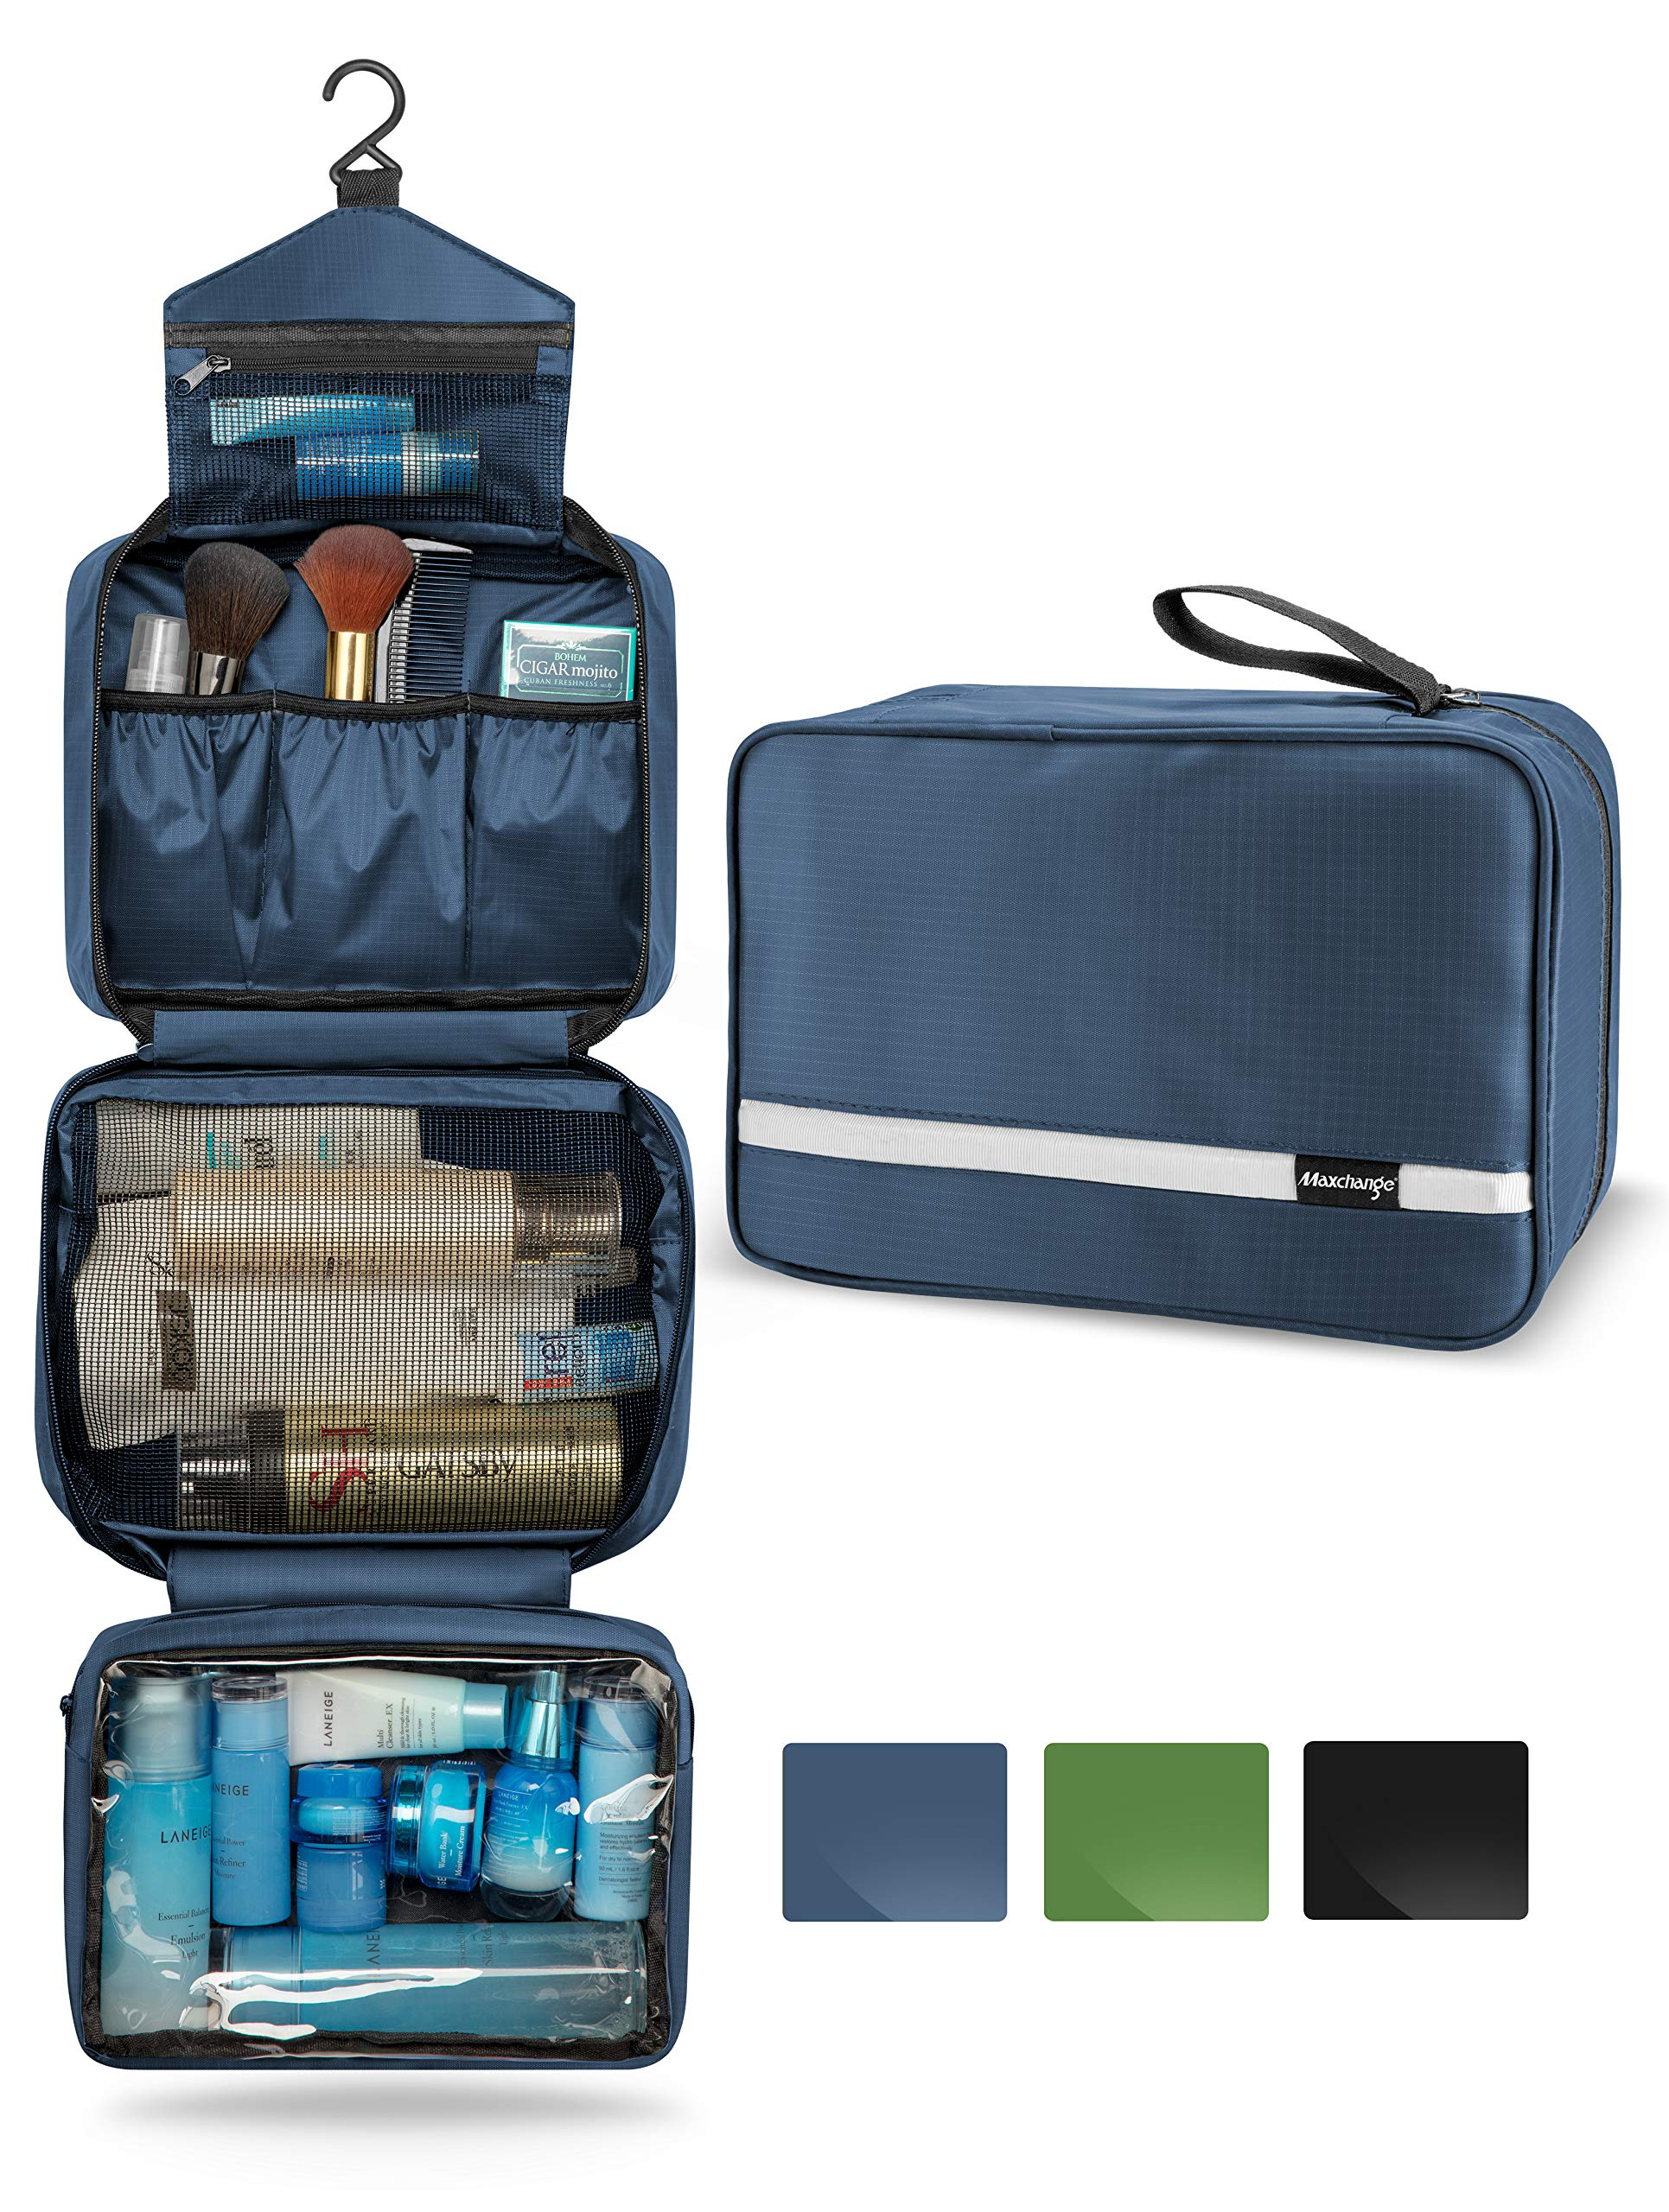 c87a99c1ae20 Hanging Toiletry Bag, Maxchange Travel Toiletry Bag | Foldable Dopp Kit  with Large Capacity for Men | 4 Layers Portable Waterproof Makeup Bag for  ...